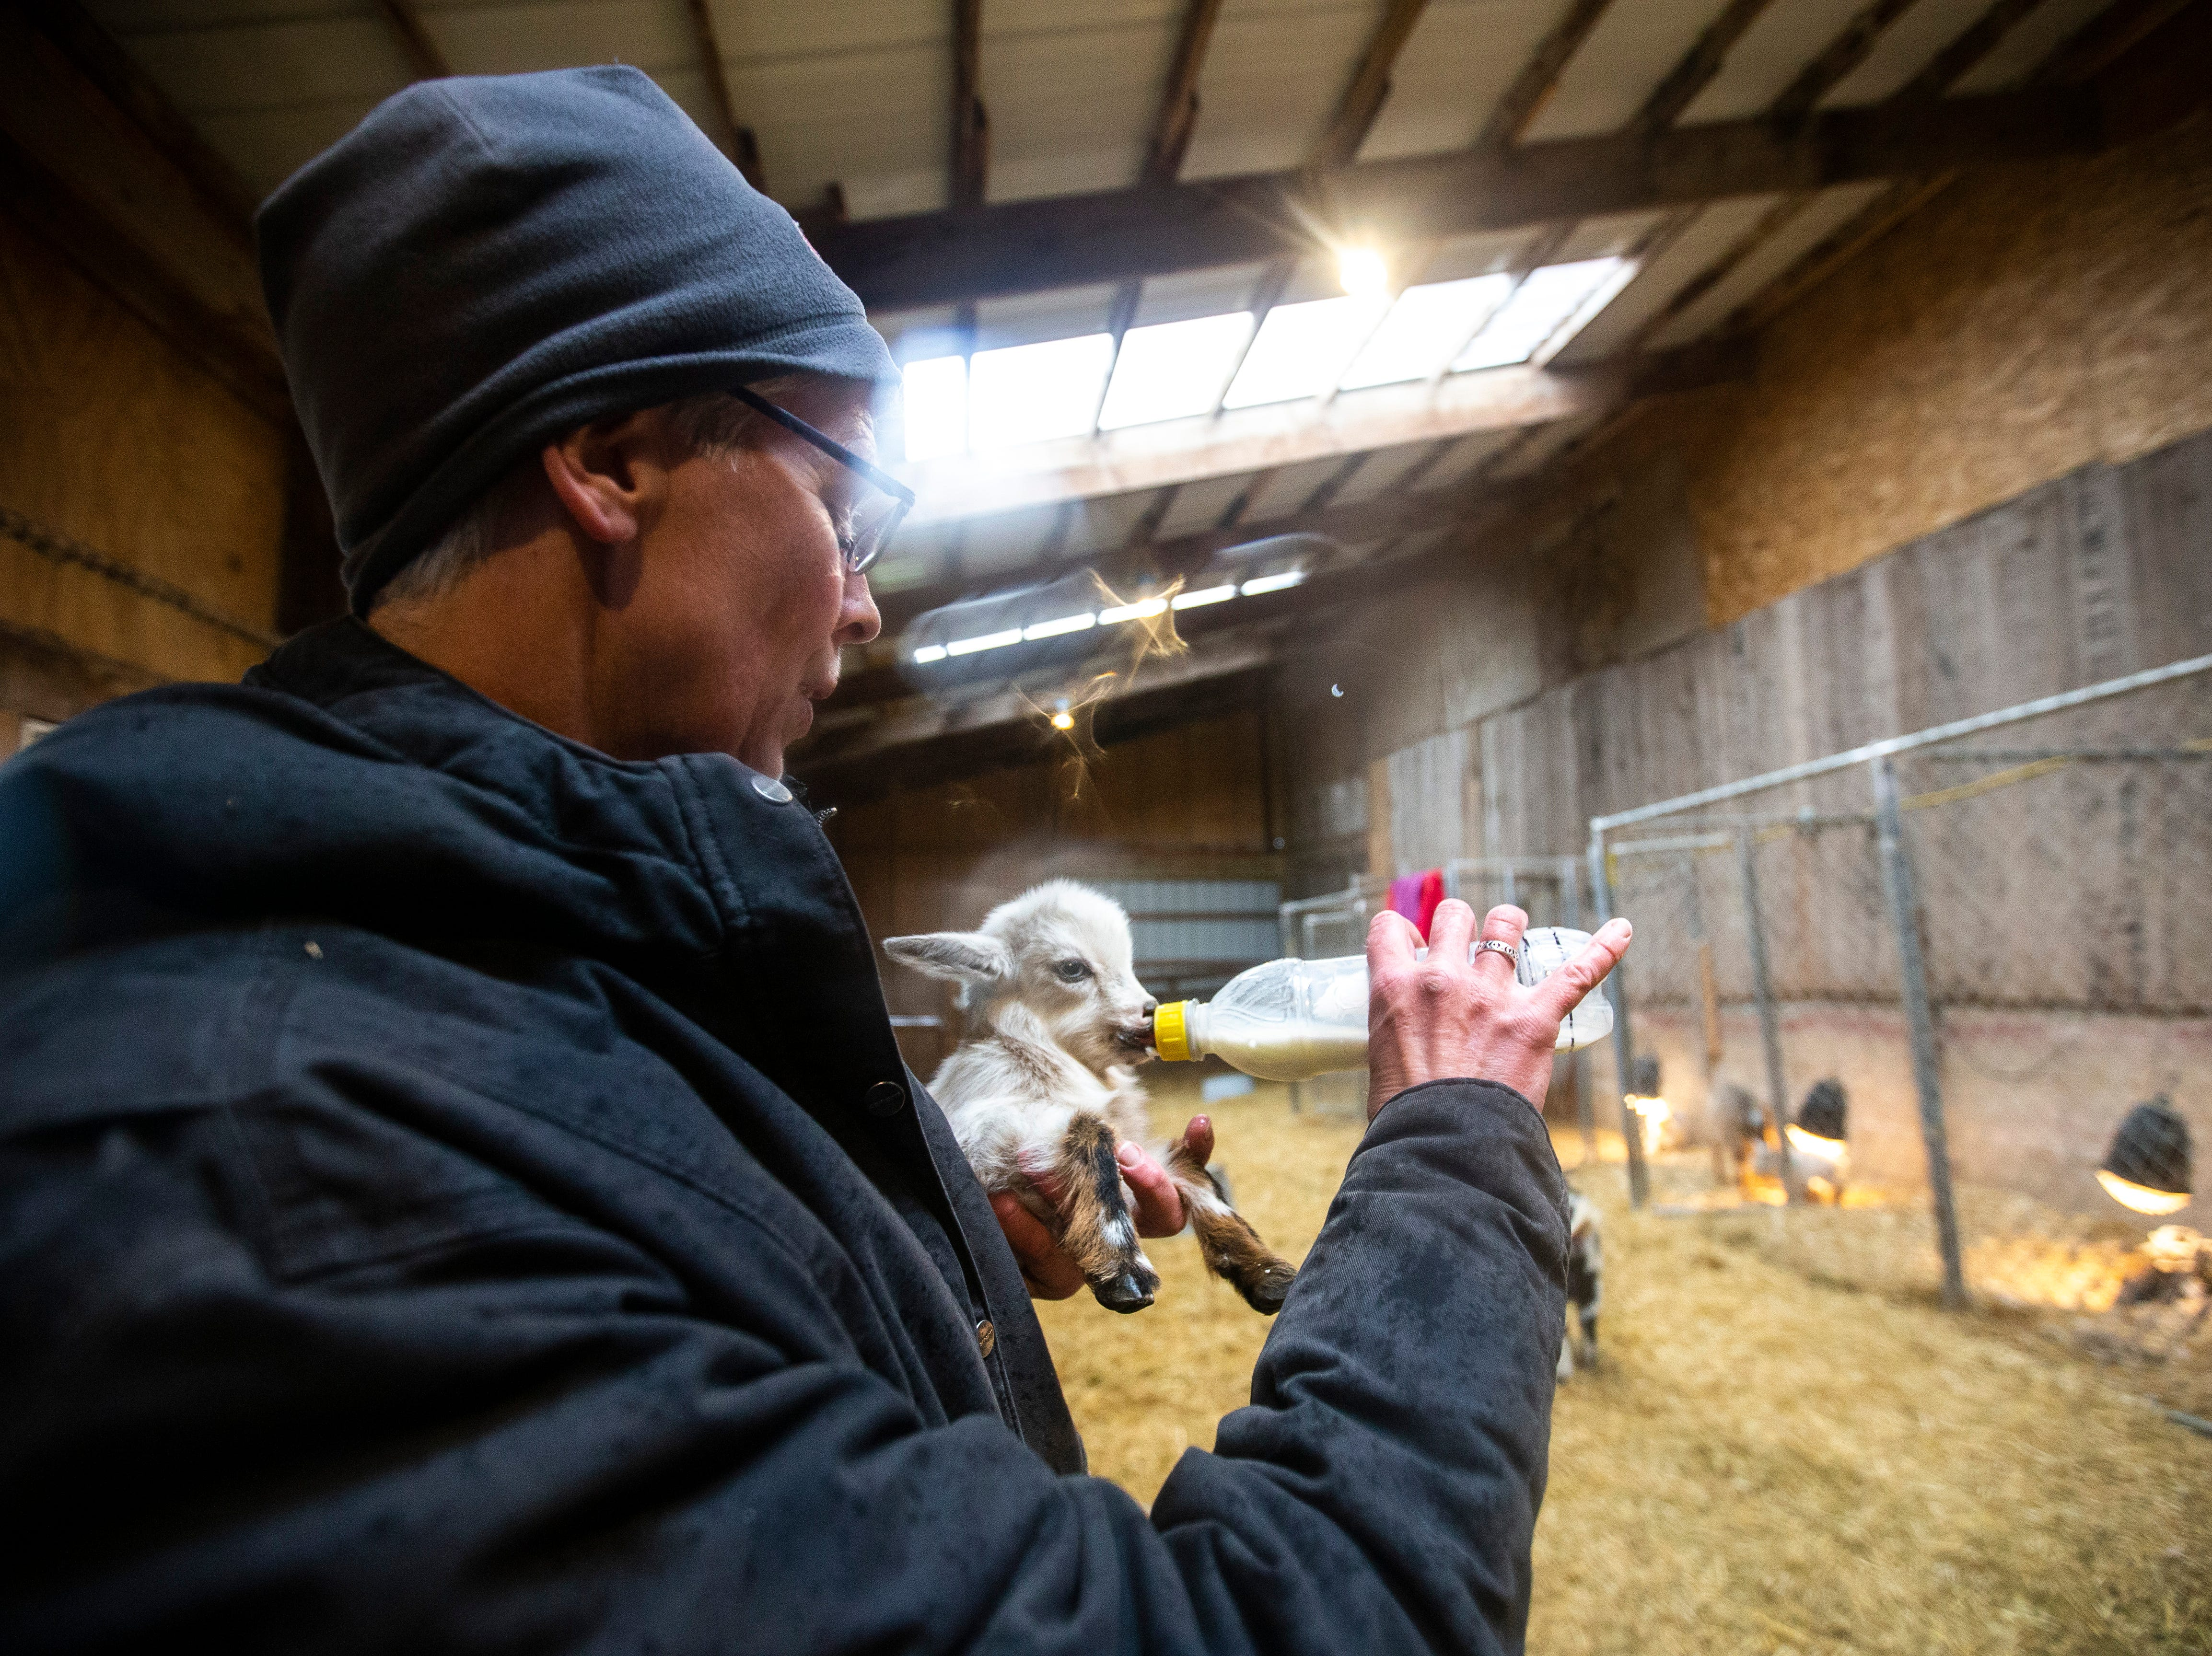 Susan Young feeds Tina, a young dairy goat, on Thursday, April 11, 2019, at Lucky Star Farm in Iowa City, Iowa.